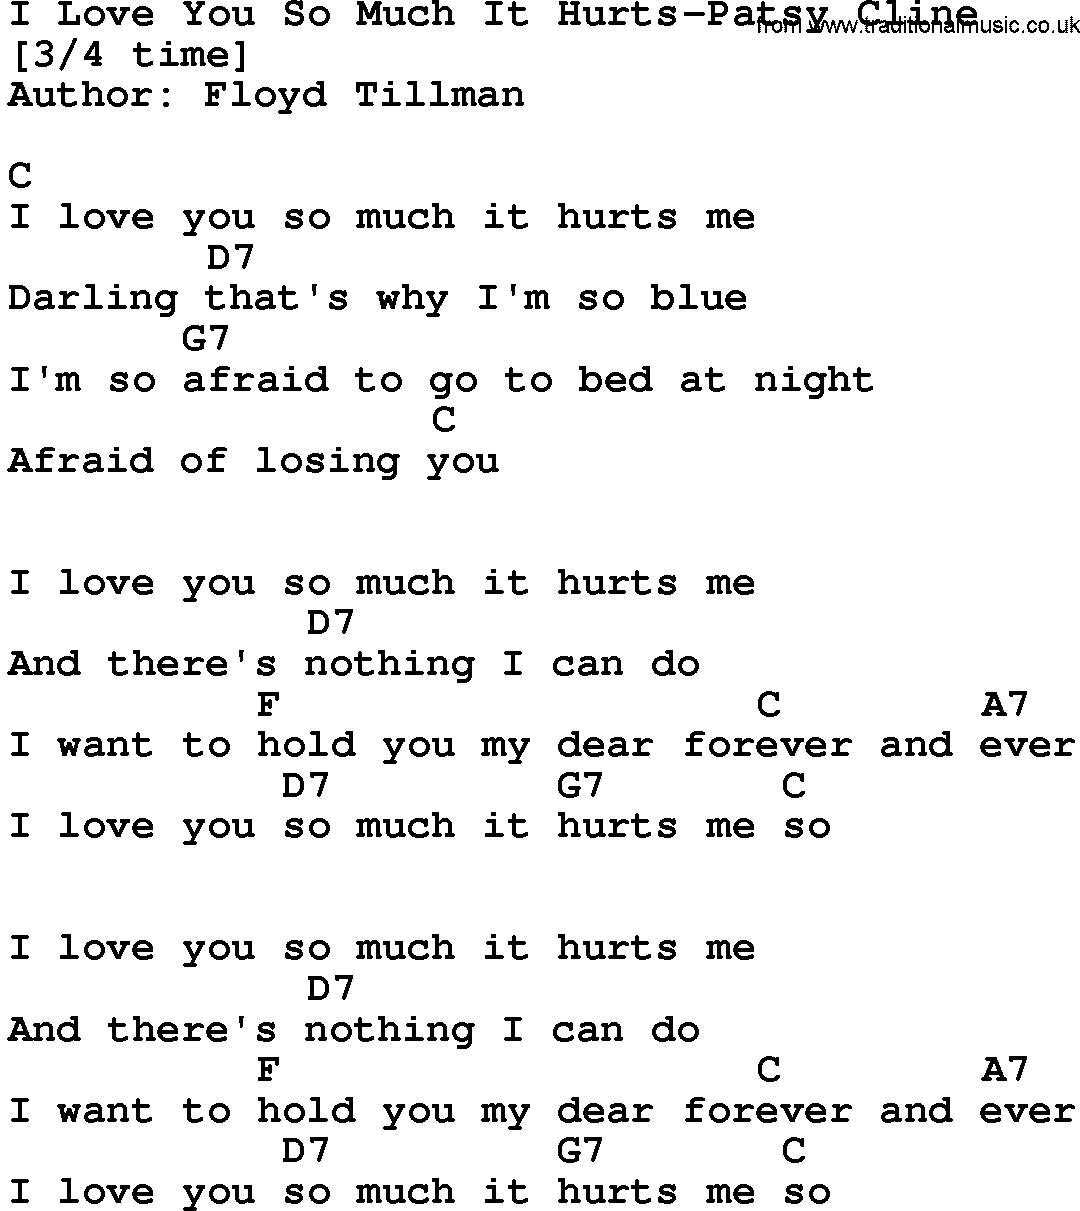 Country Musici Love You So Much It Hurts Patsy Cline Lyrics And Chords